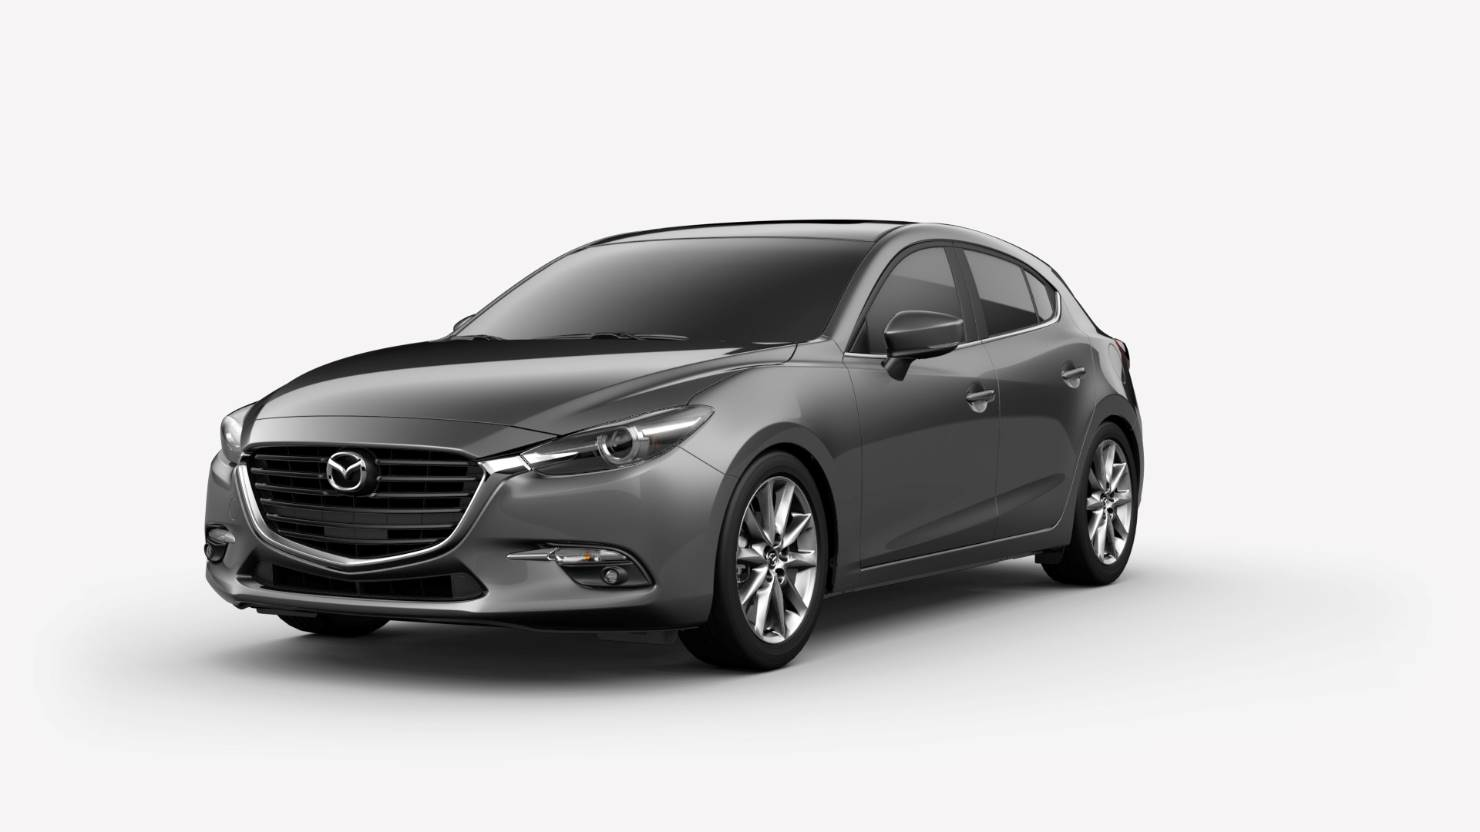 2018 Mazda3 Hatchback, Machine Gray